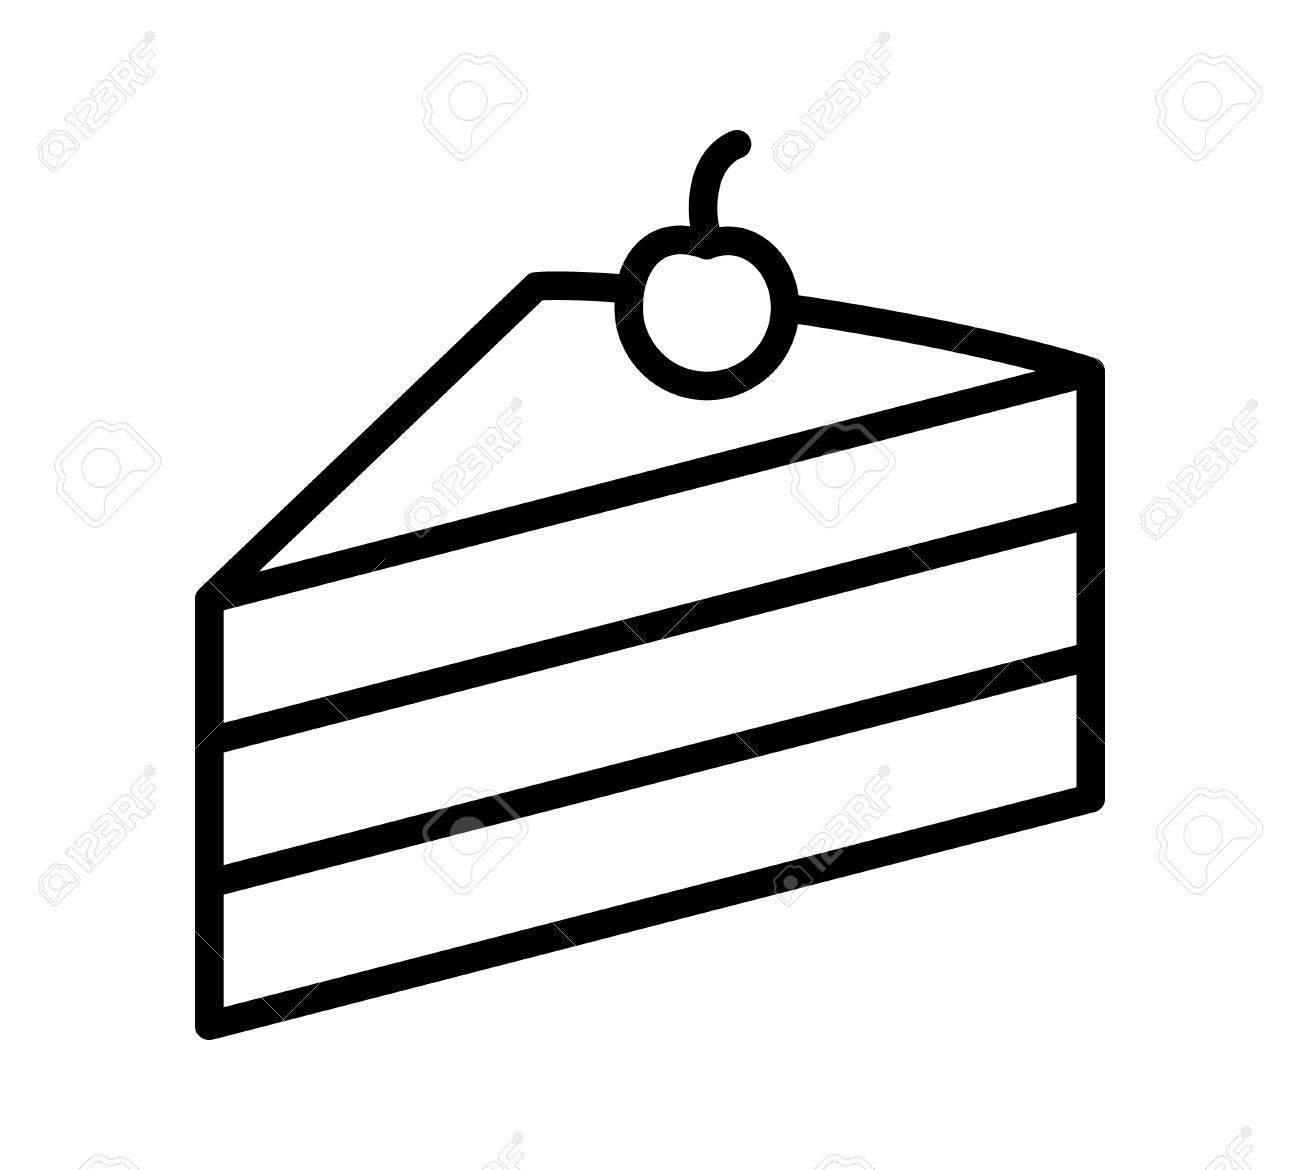 1300x1170 Sliced Of Layer Dessert Cake With Cherry On Top Line Art Vector